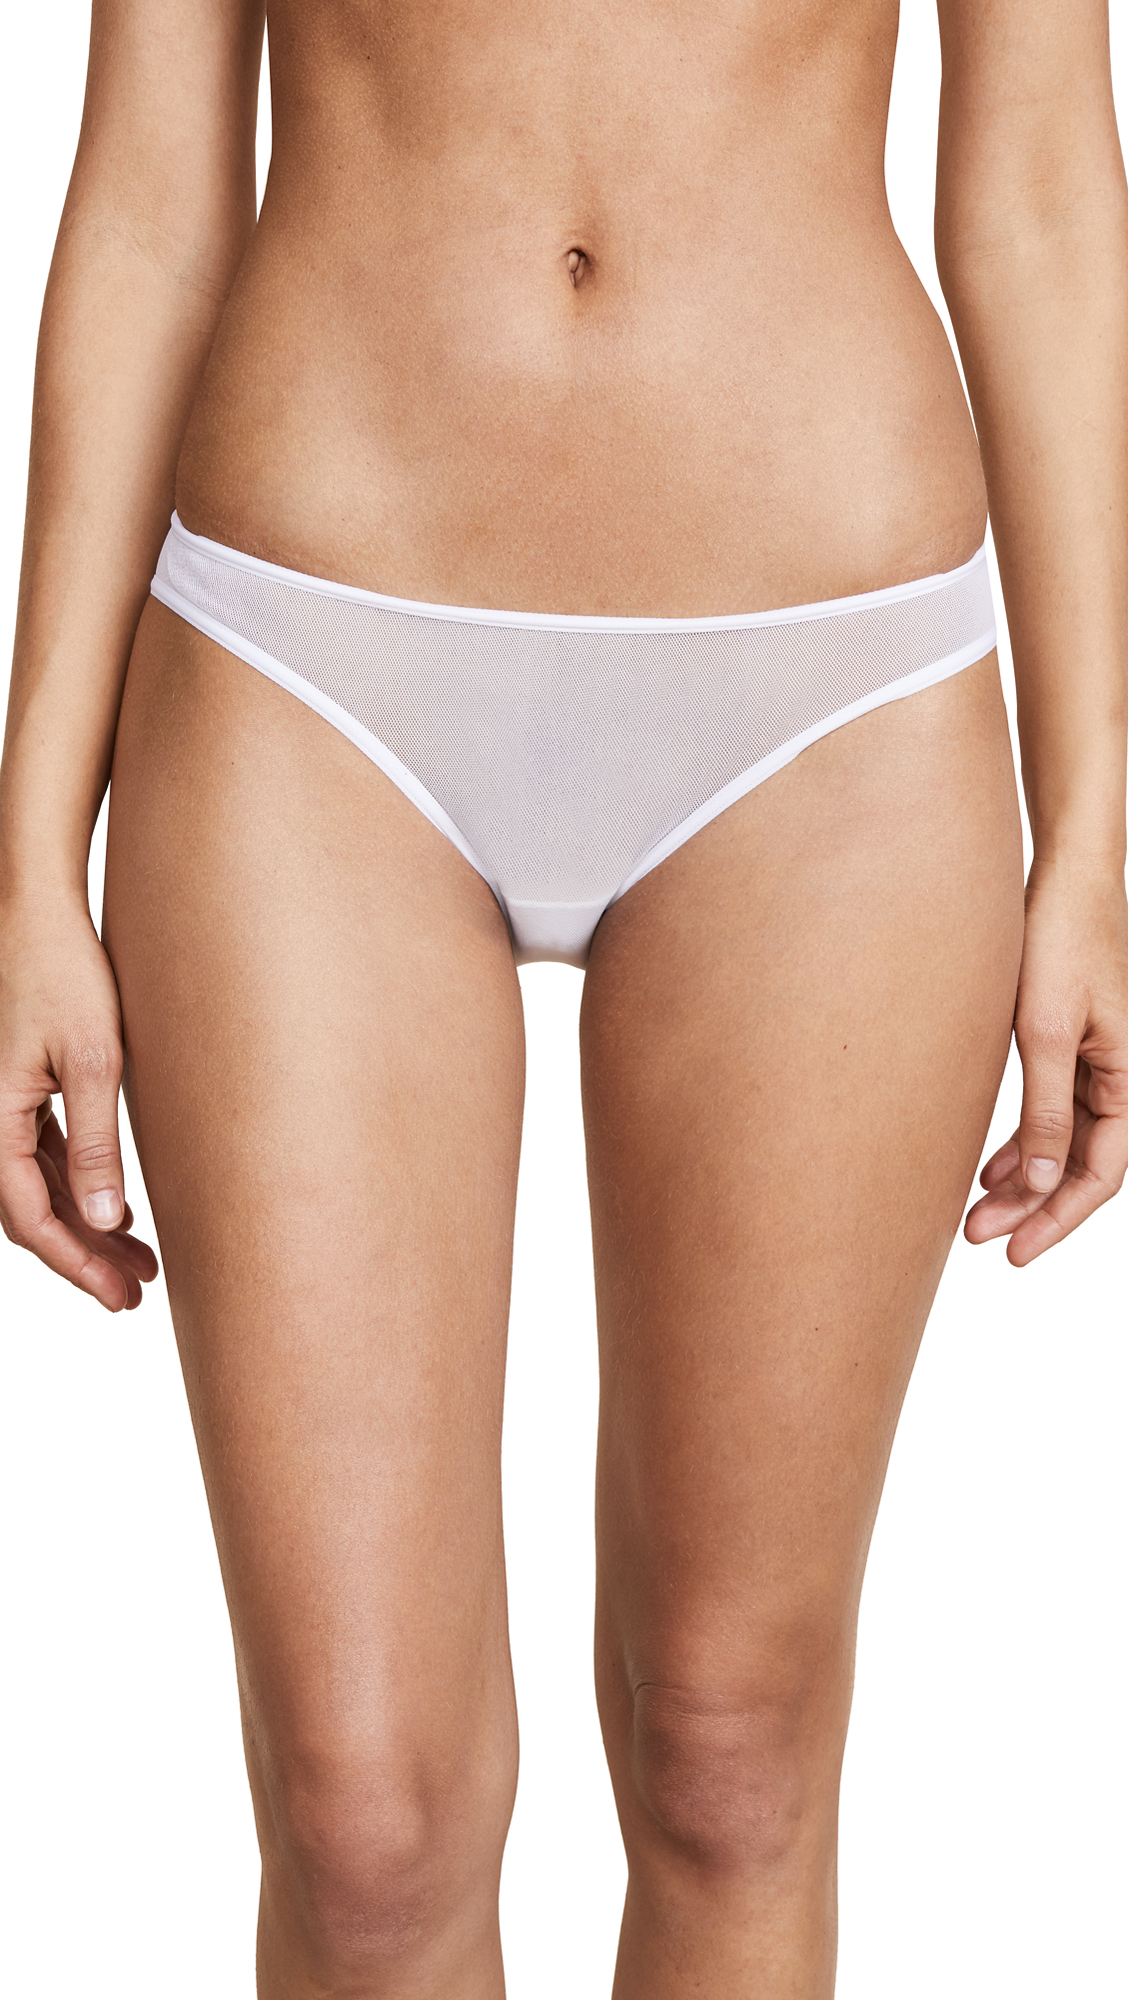 Cosabella Soiree Low Rise Panties